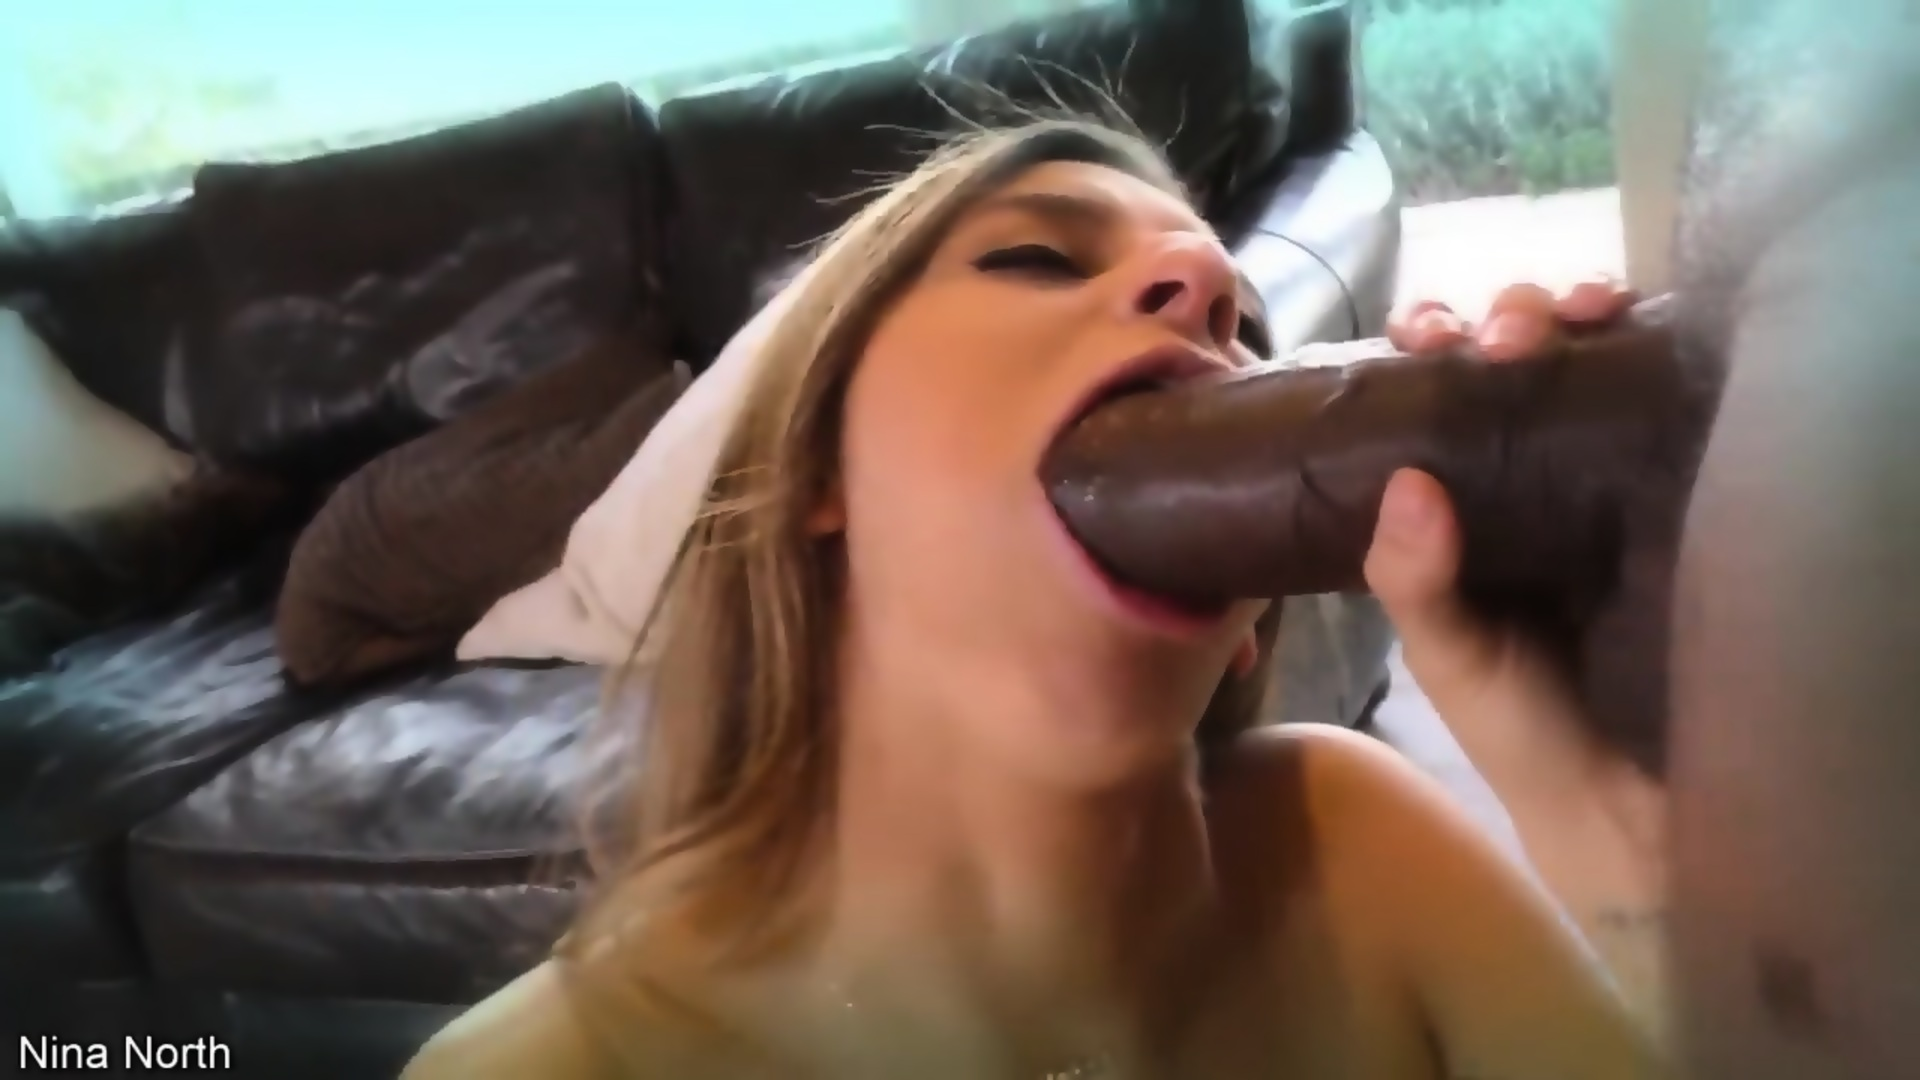 Porno young girl squirting solo